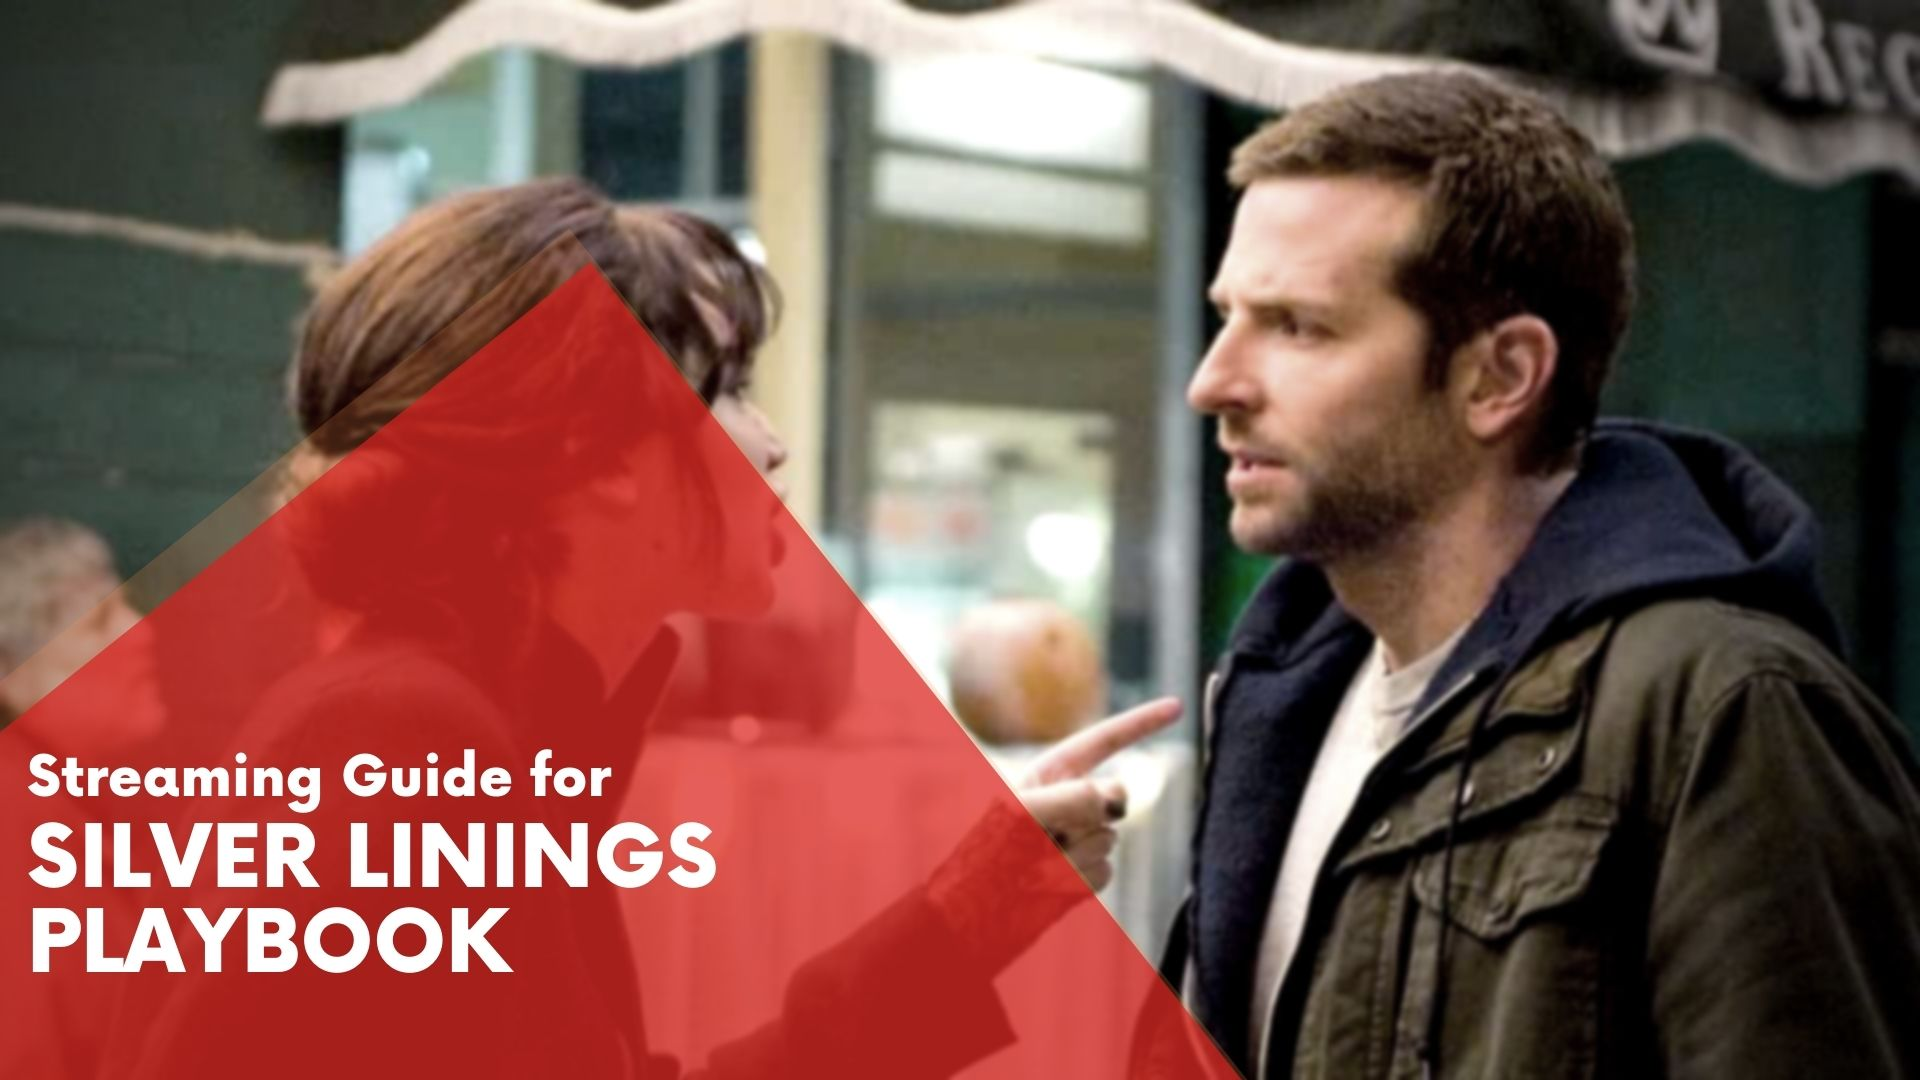 Answering if Silver Linings Playbook is available on Hulu